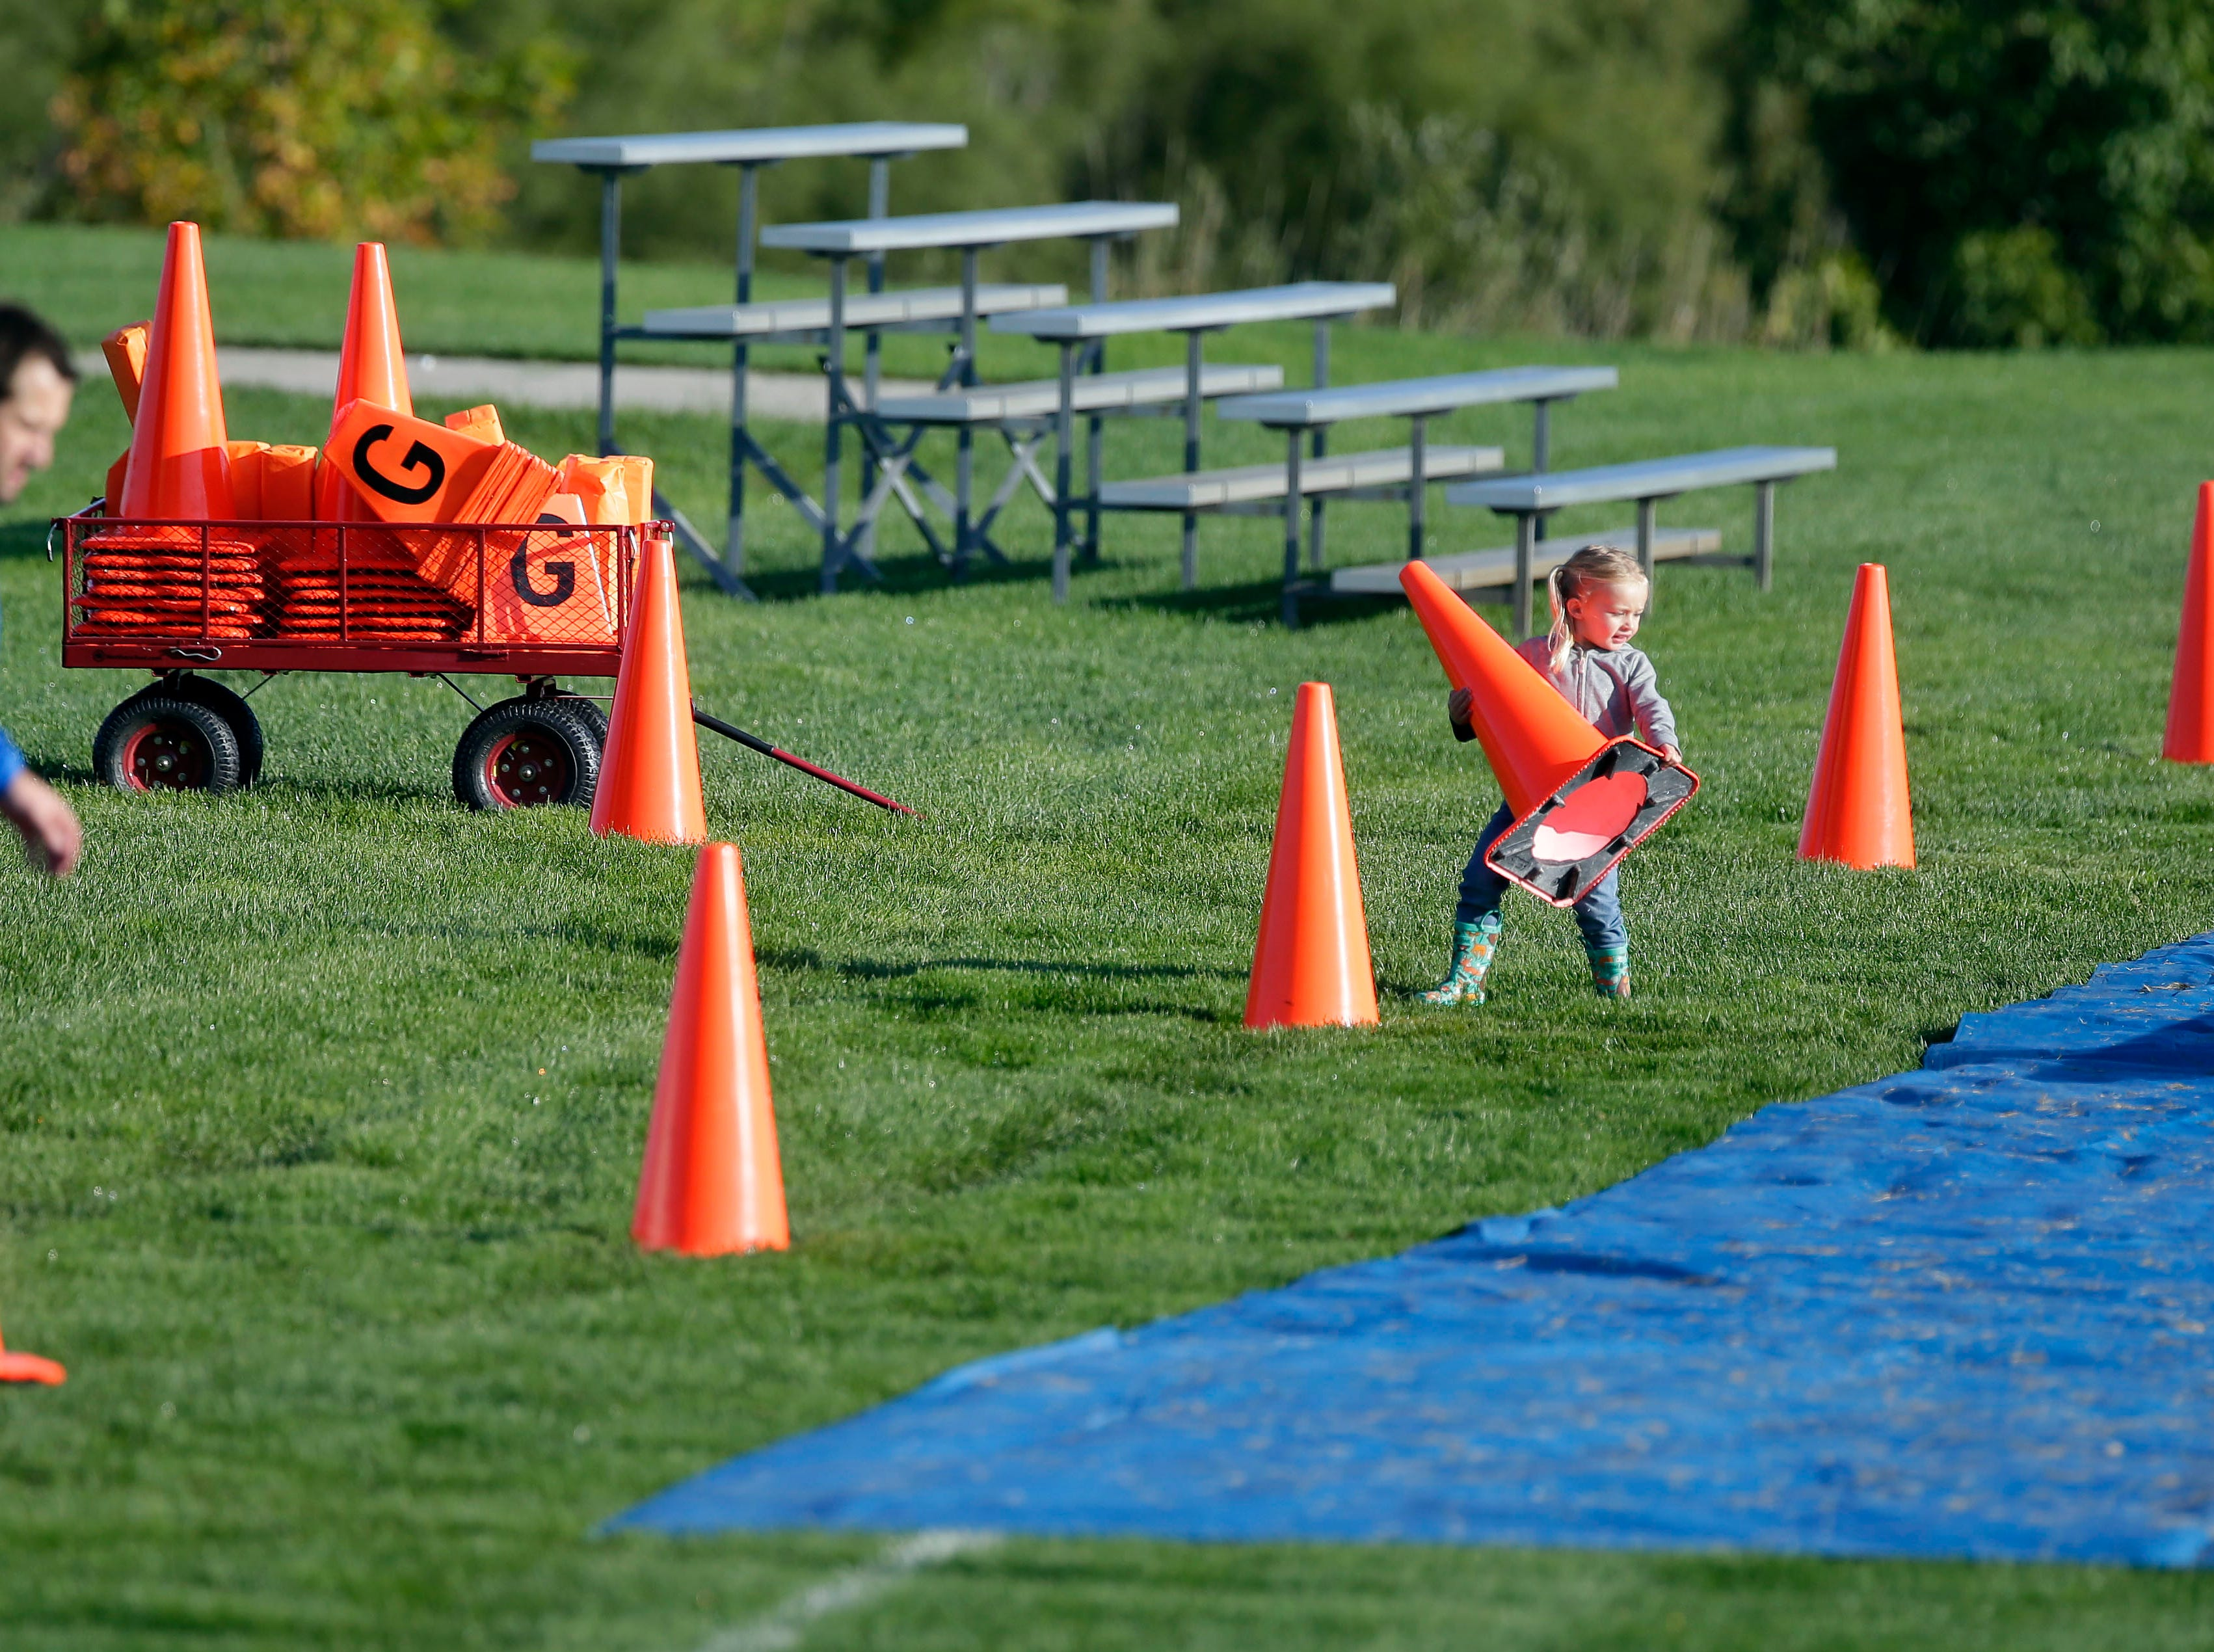 Sienna Springer helps her father, Will, a board member of Fox Valley Pop Warner Football, get cones in place before the first game of the season gets underway Saturday, September 8, 2018, at Plamann Park in Grand Chute, Wis.